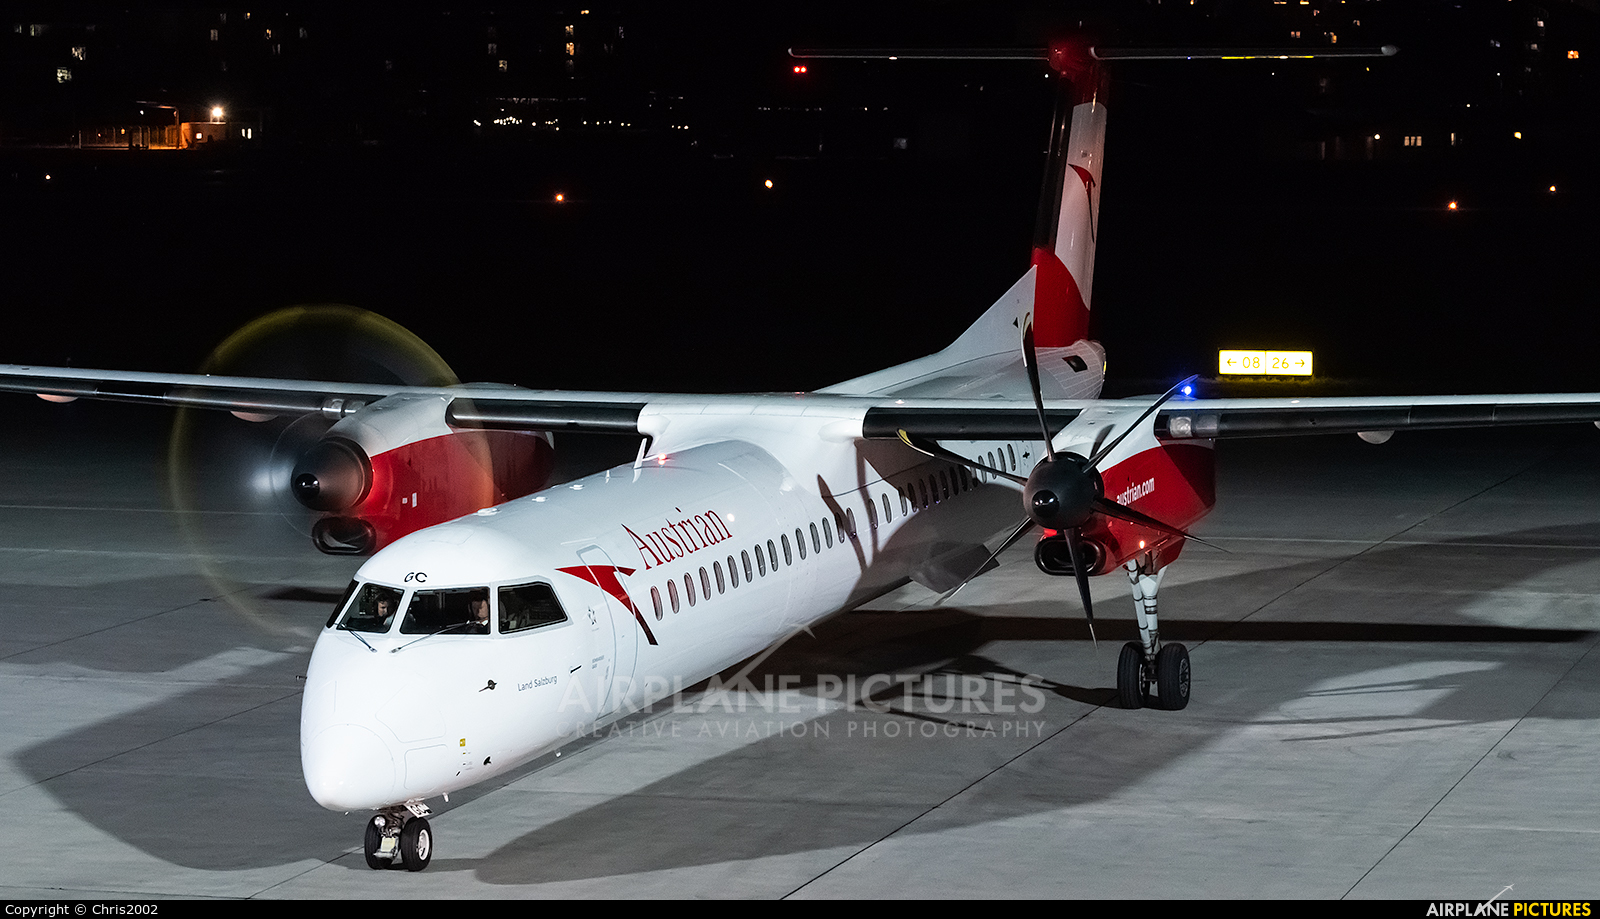 Austrian Airlines/Arrows/Tyrolean OE-LGC aircraft at Innsbruck